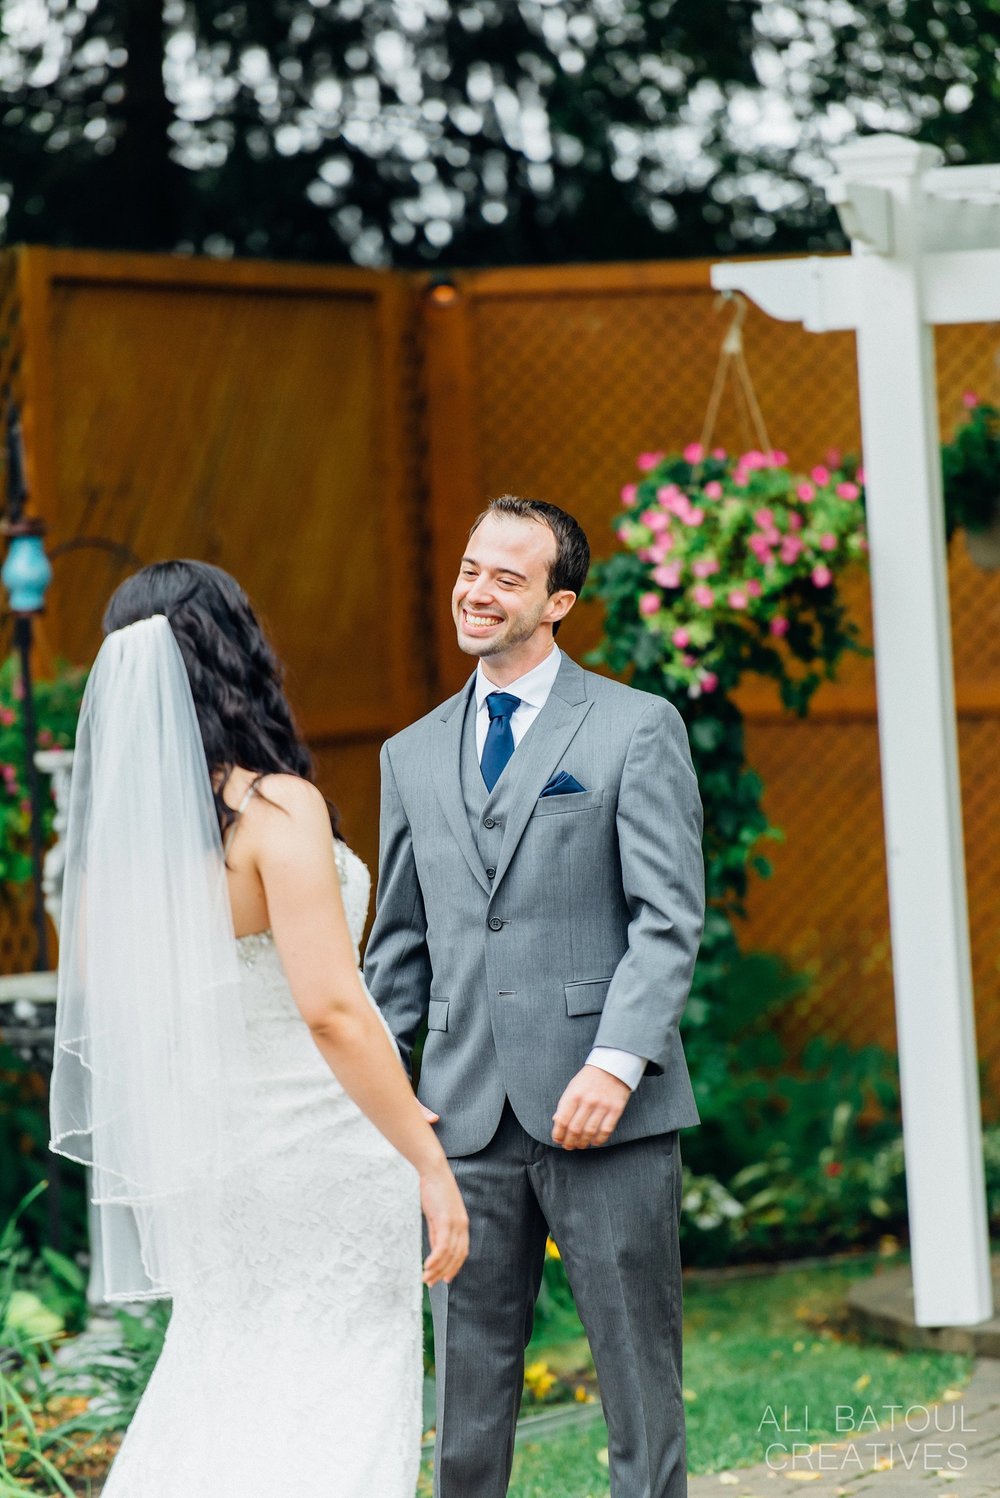 Jocelyn + Steve At The Schoolhouse Wedding - Ali and Batoul Fine Art Wedding Photography_0026.jpg